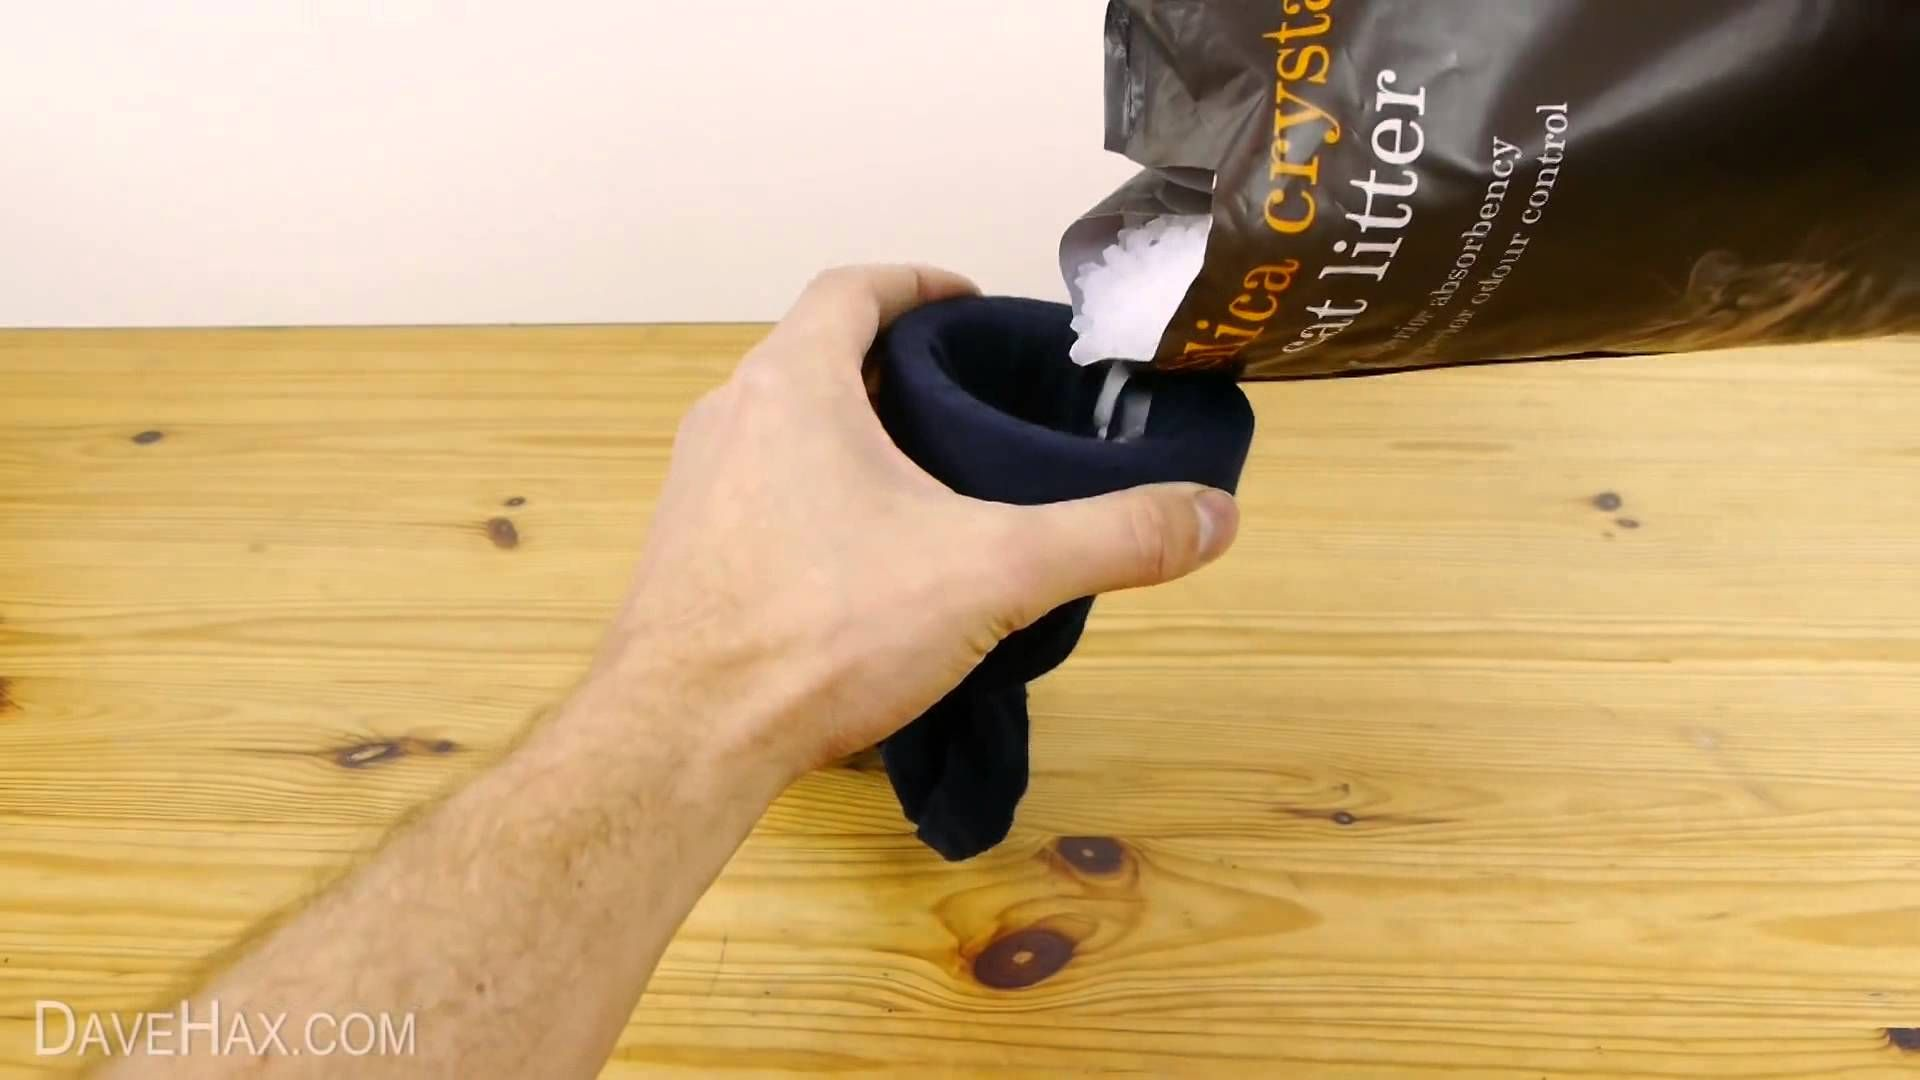 He Poured Kitty Litter Into A Sock. Why? The Reason Will